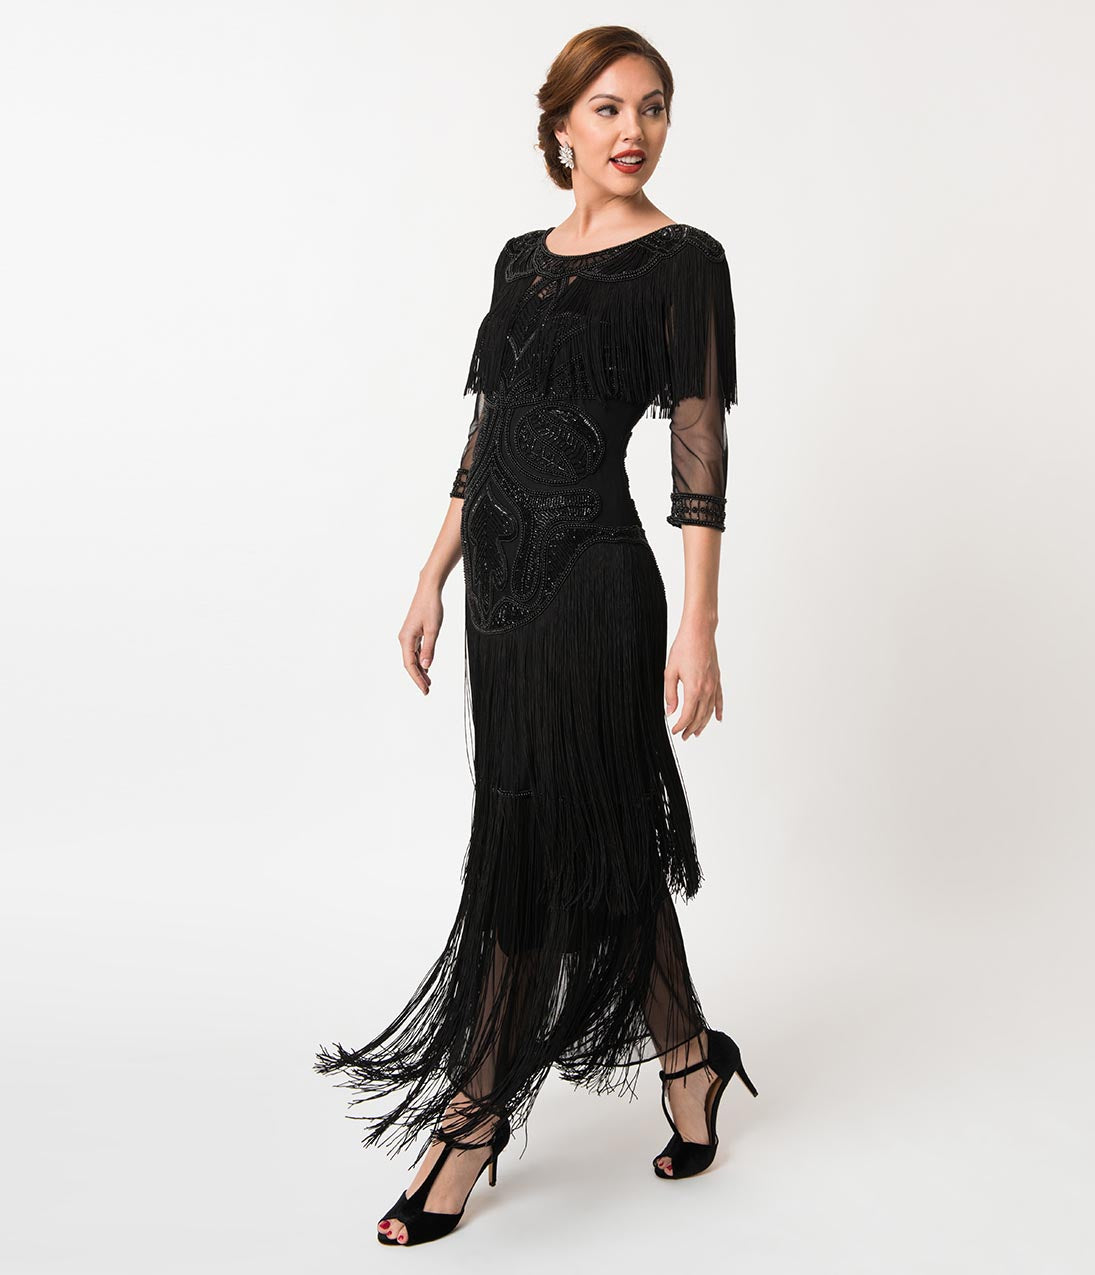 Downton Abbey Inspired Dresses 1920S Style Black Beaded Mesh Glam Fringe Flapper Maxi Gown $248.00 AT vintagedancer.com